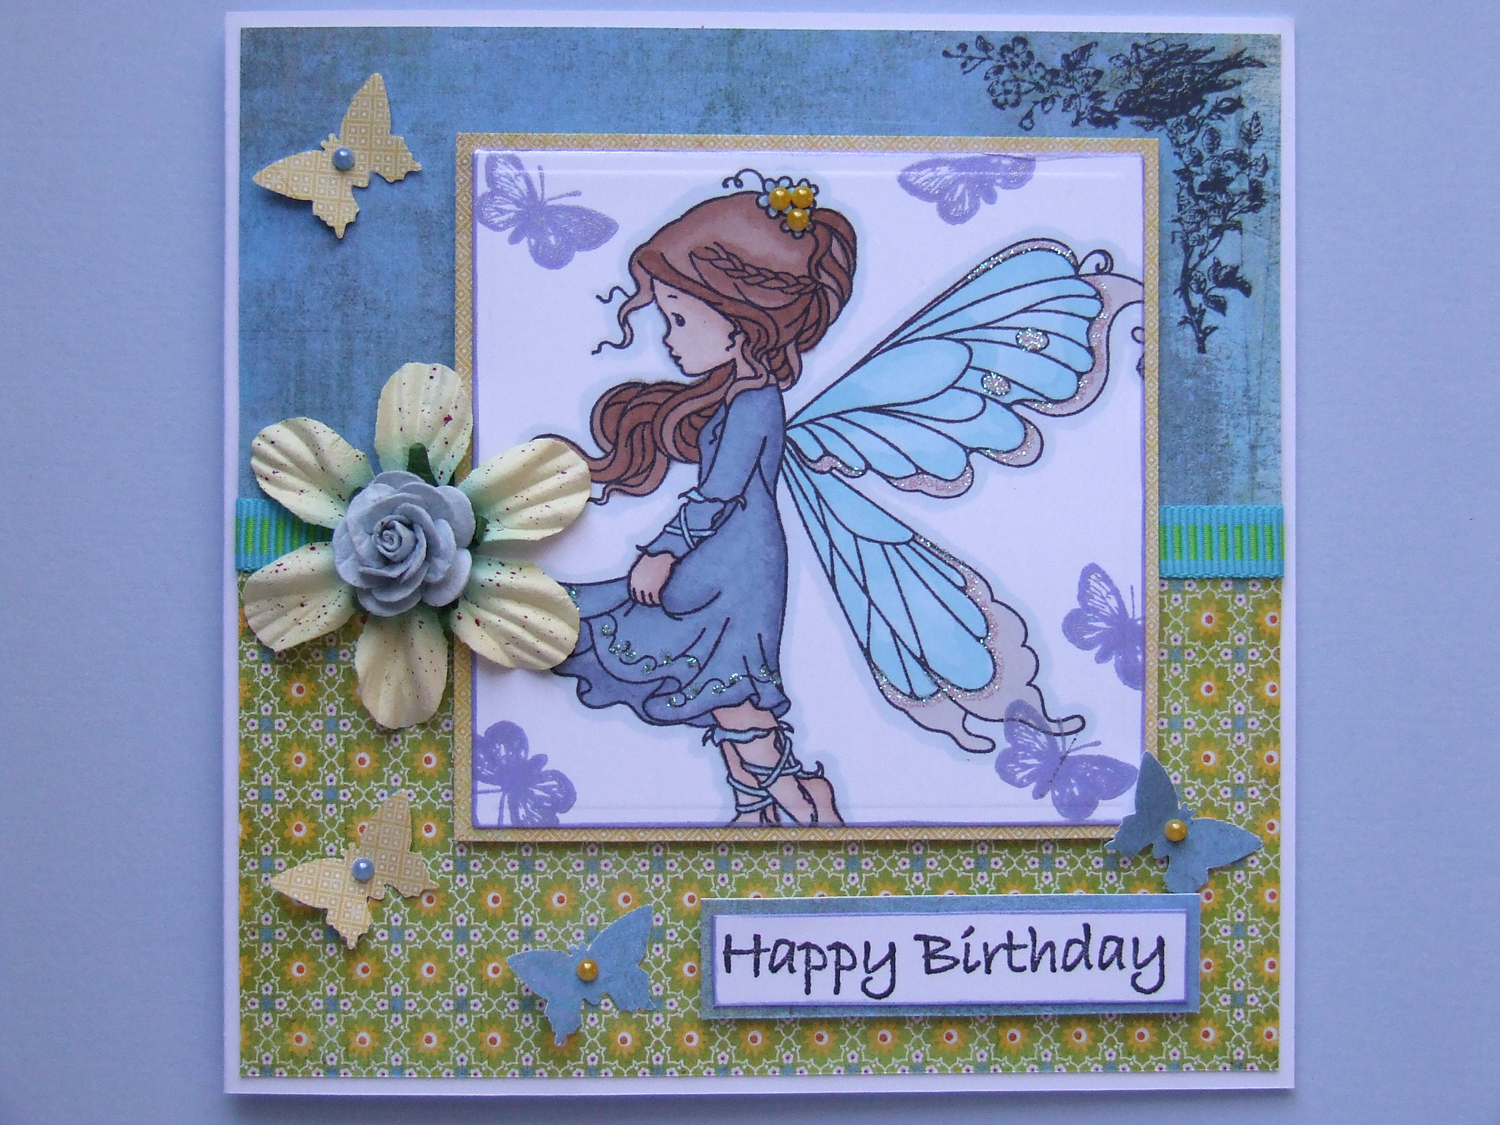 Laughing ducks whimsy silver fairy stamped birthday card whimsy silver fairy stamped birthday card bookmarktalkfo Image collections